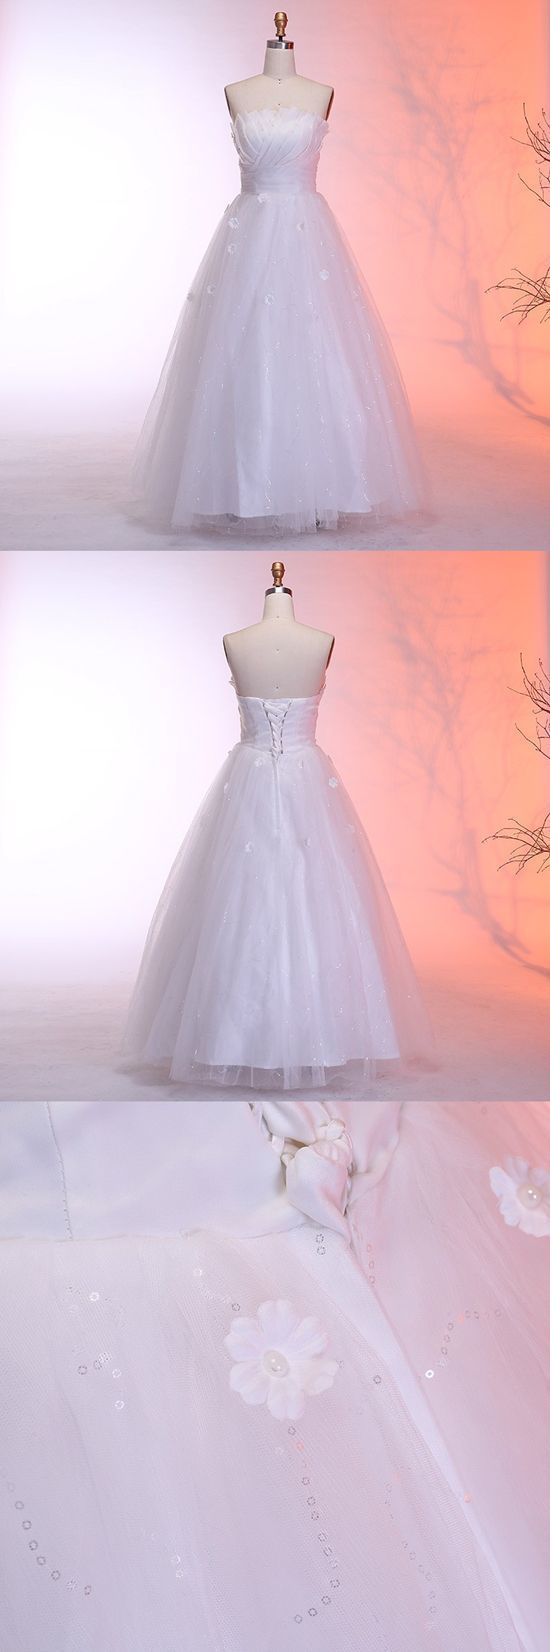 A-Line Strapless Floor-Length Wedding Dress with Appliques Sequins